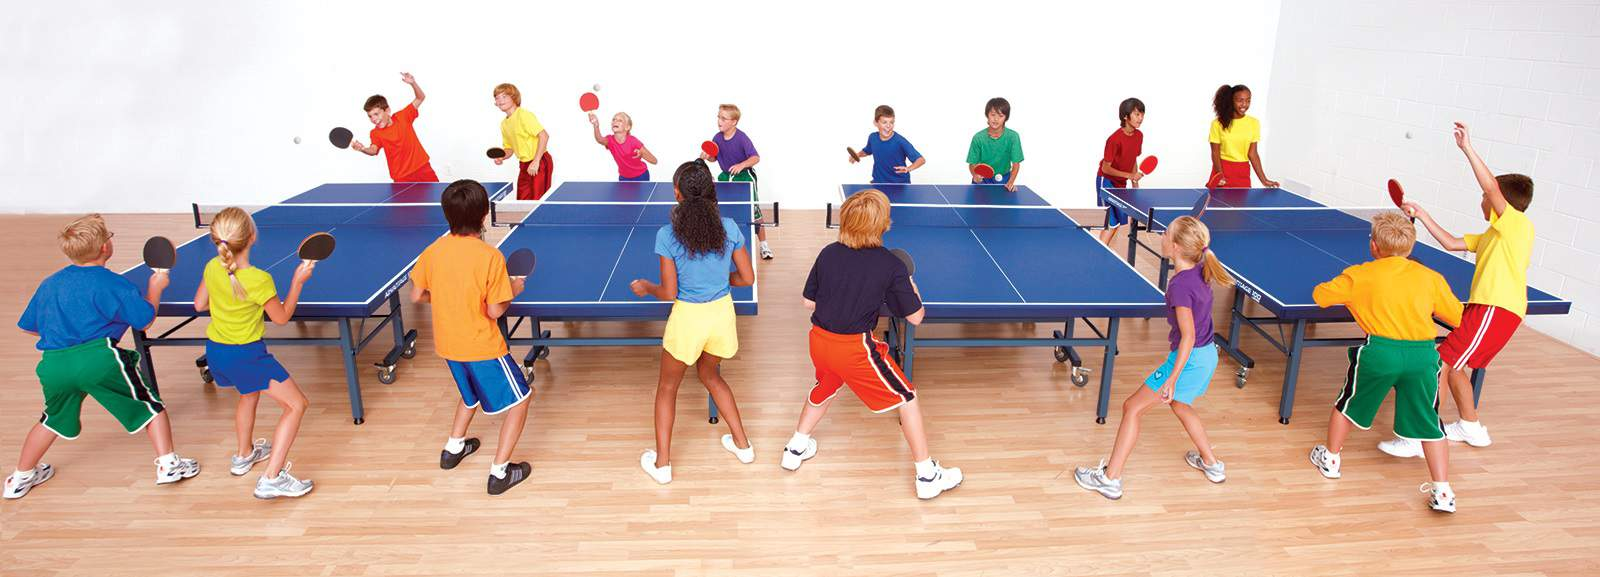 Class playing table tennis